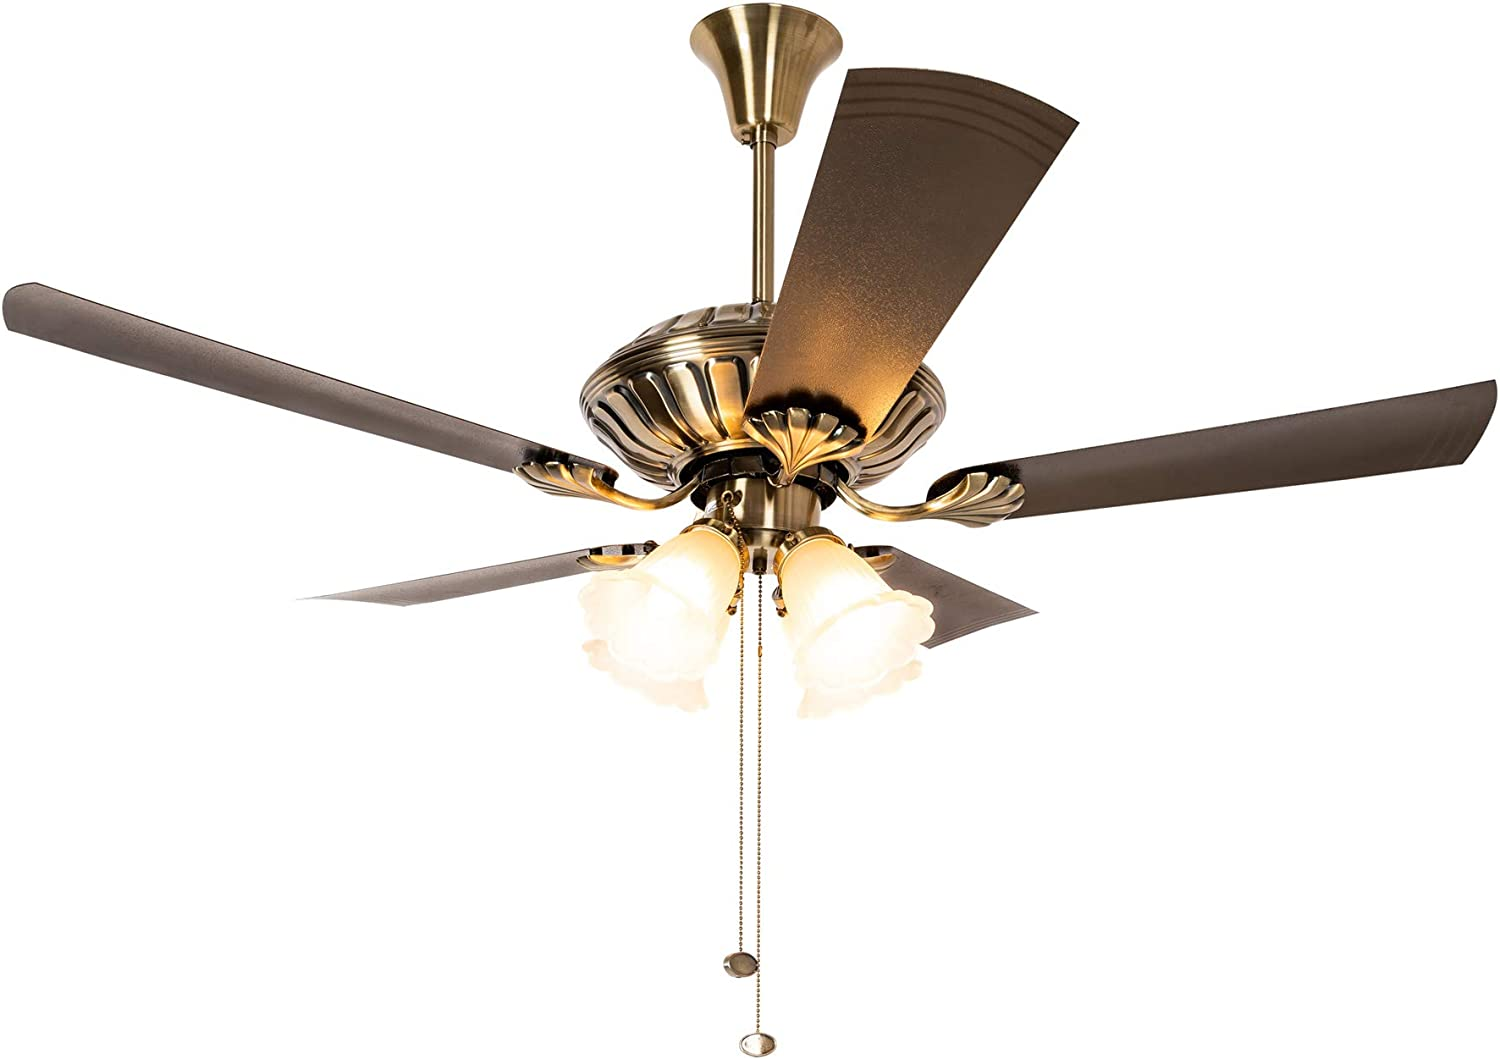 Buy Crompton Jupiter Ceiling Fan With Decorative Lights 1200 Mm Brass Online At Low Prices In India Amazon In